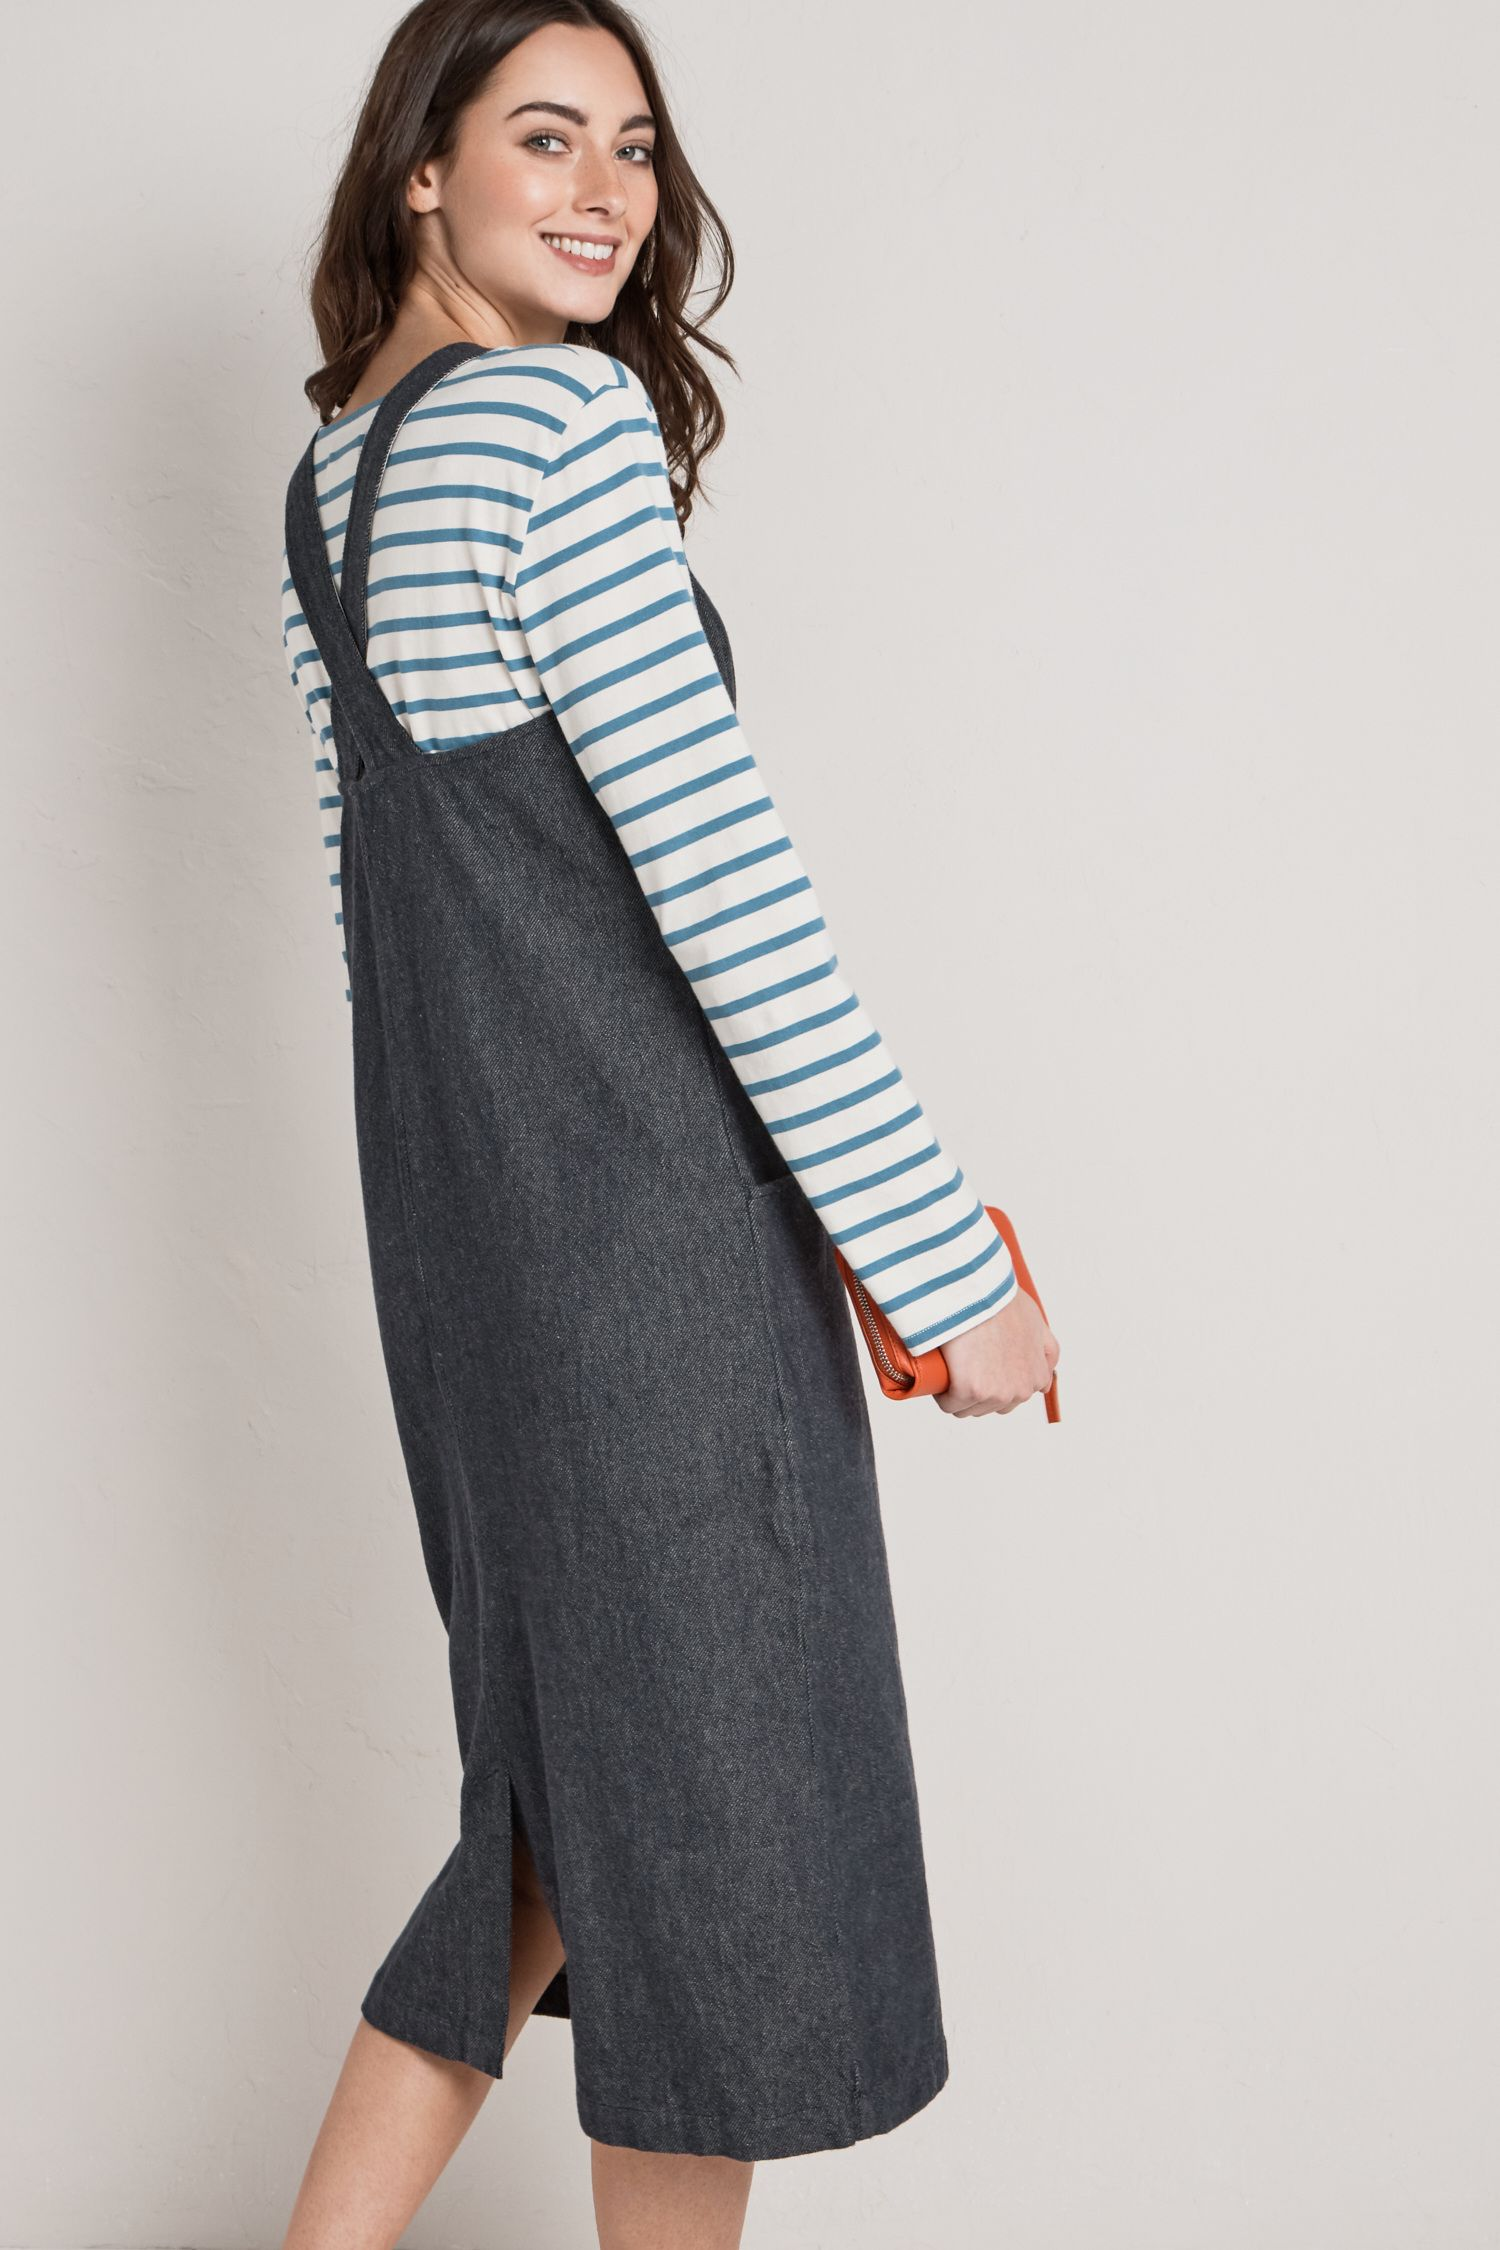 51ed40726844 The Seasalt Chywoone Dress is a relaxed fit ladies' pinafore dress with a  studiowear feel. This midi dress is made from soft, textured yarn-dyed  cotton ...